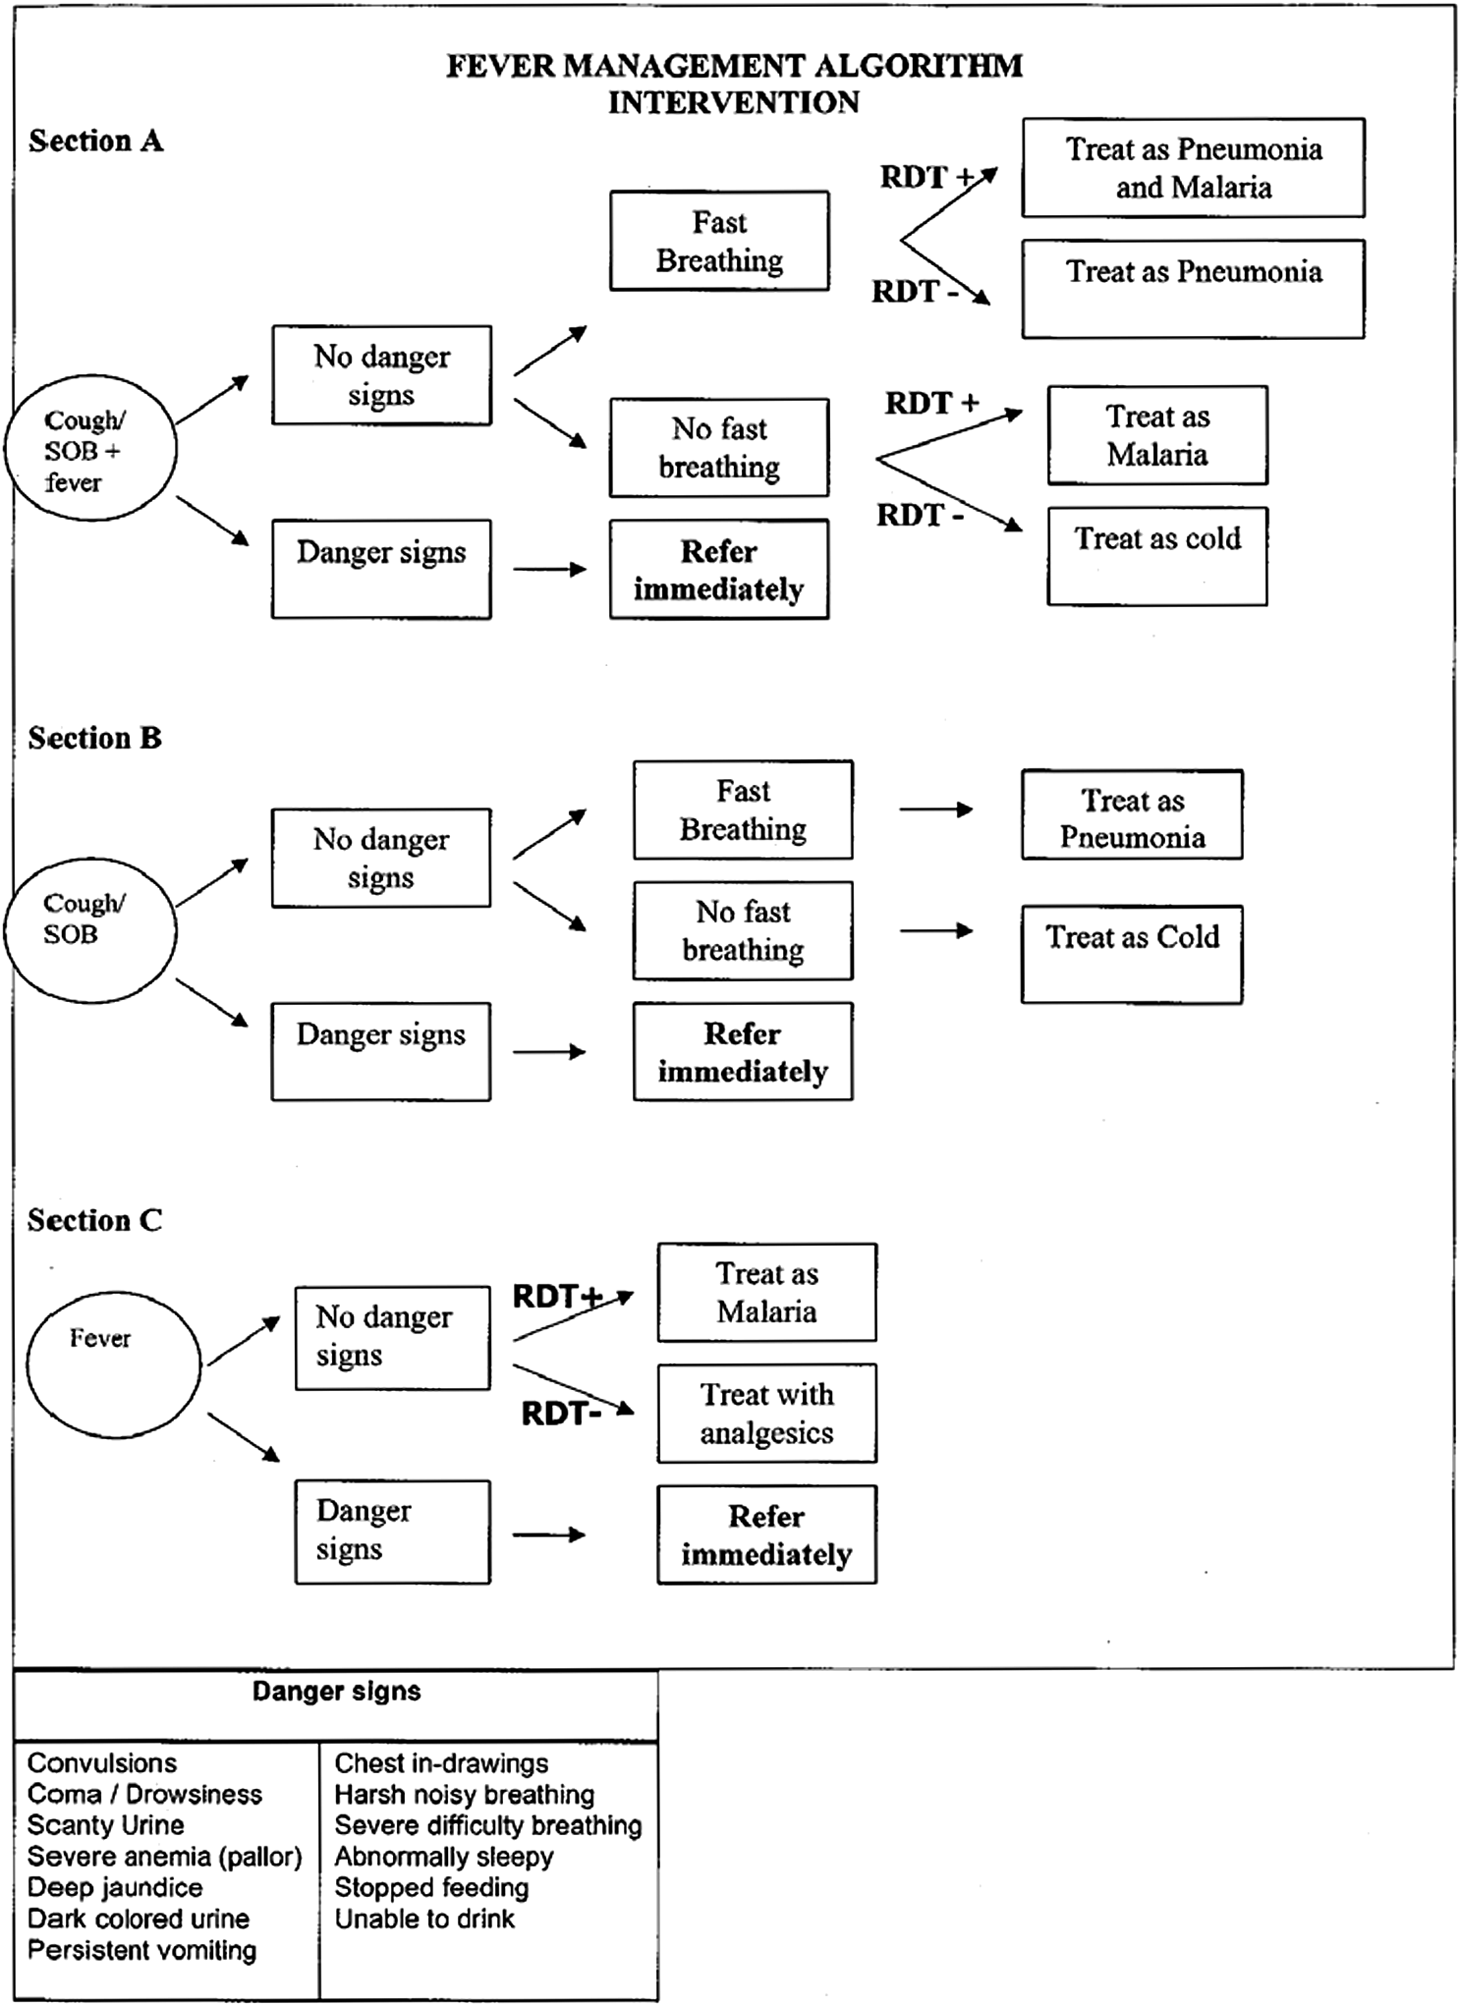 Treatment algorithm for Intervention Community Health Workers.